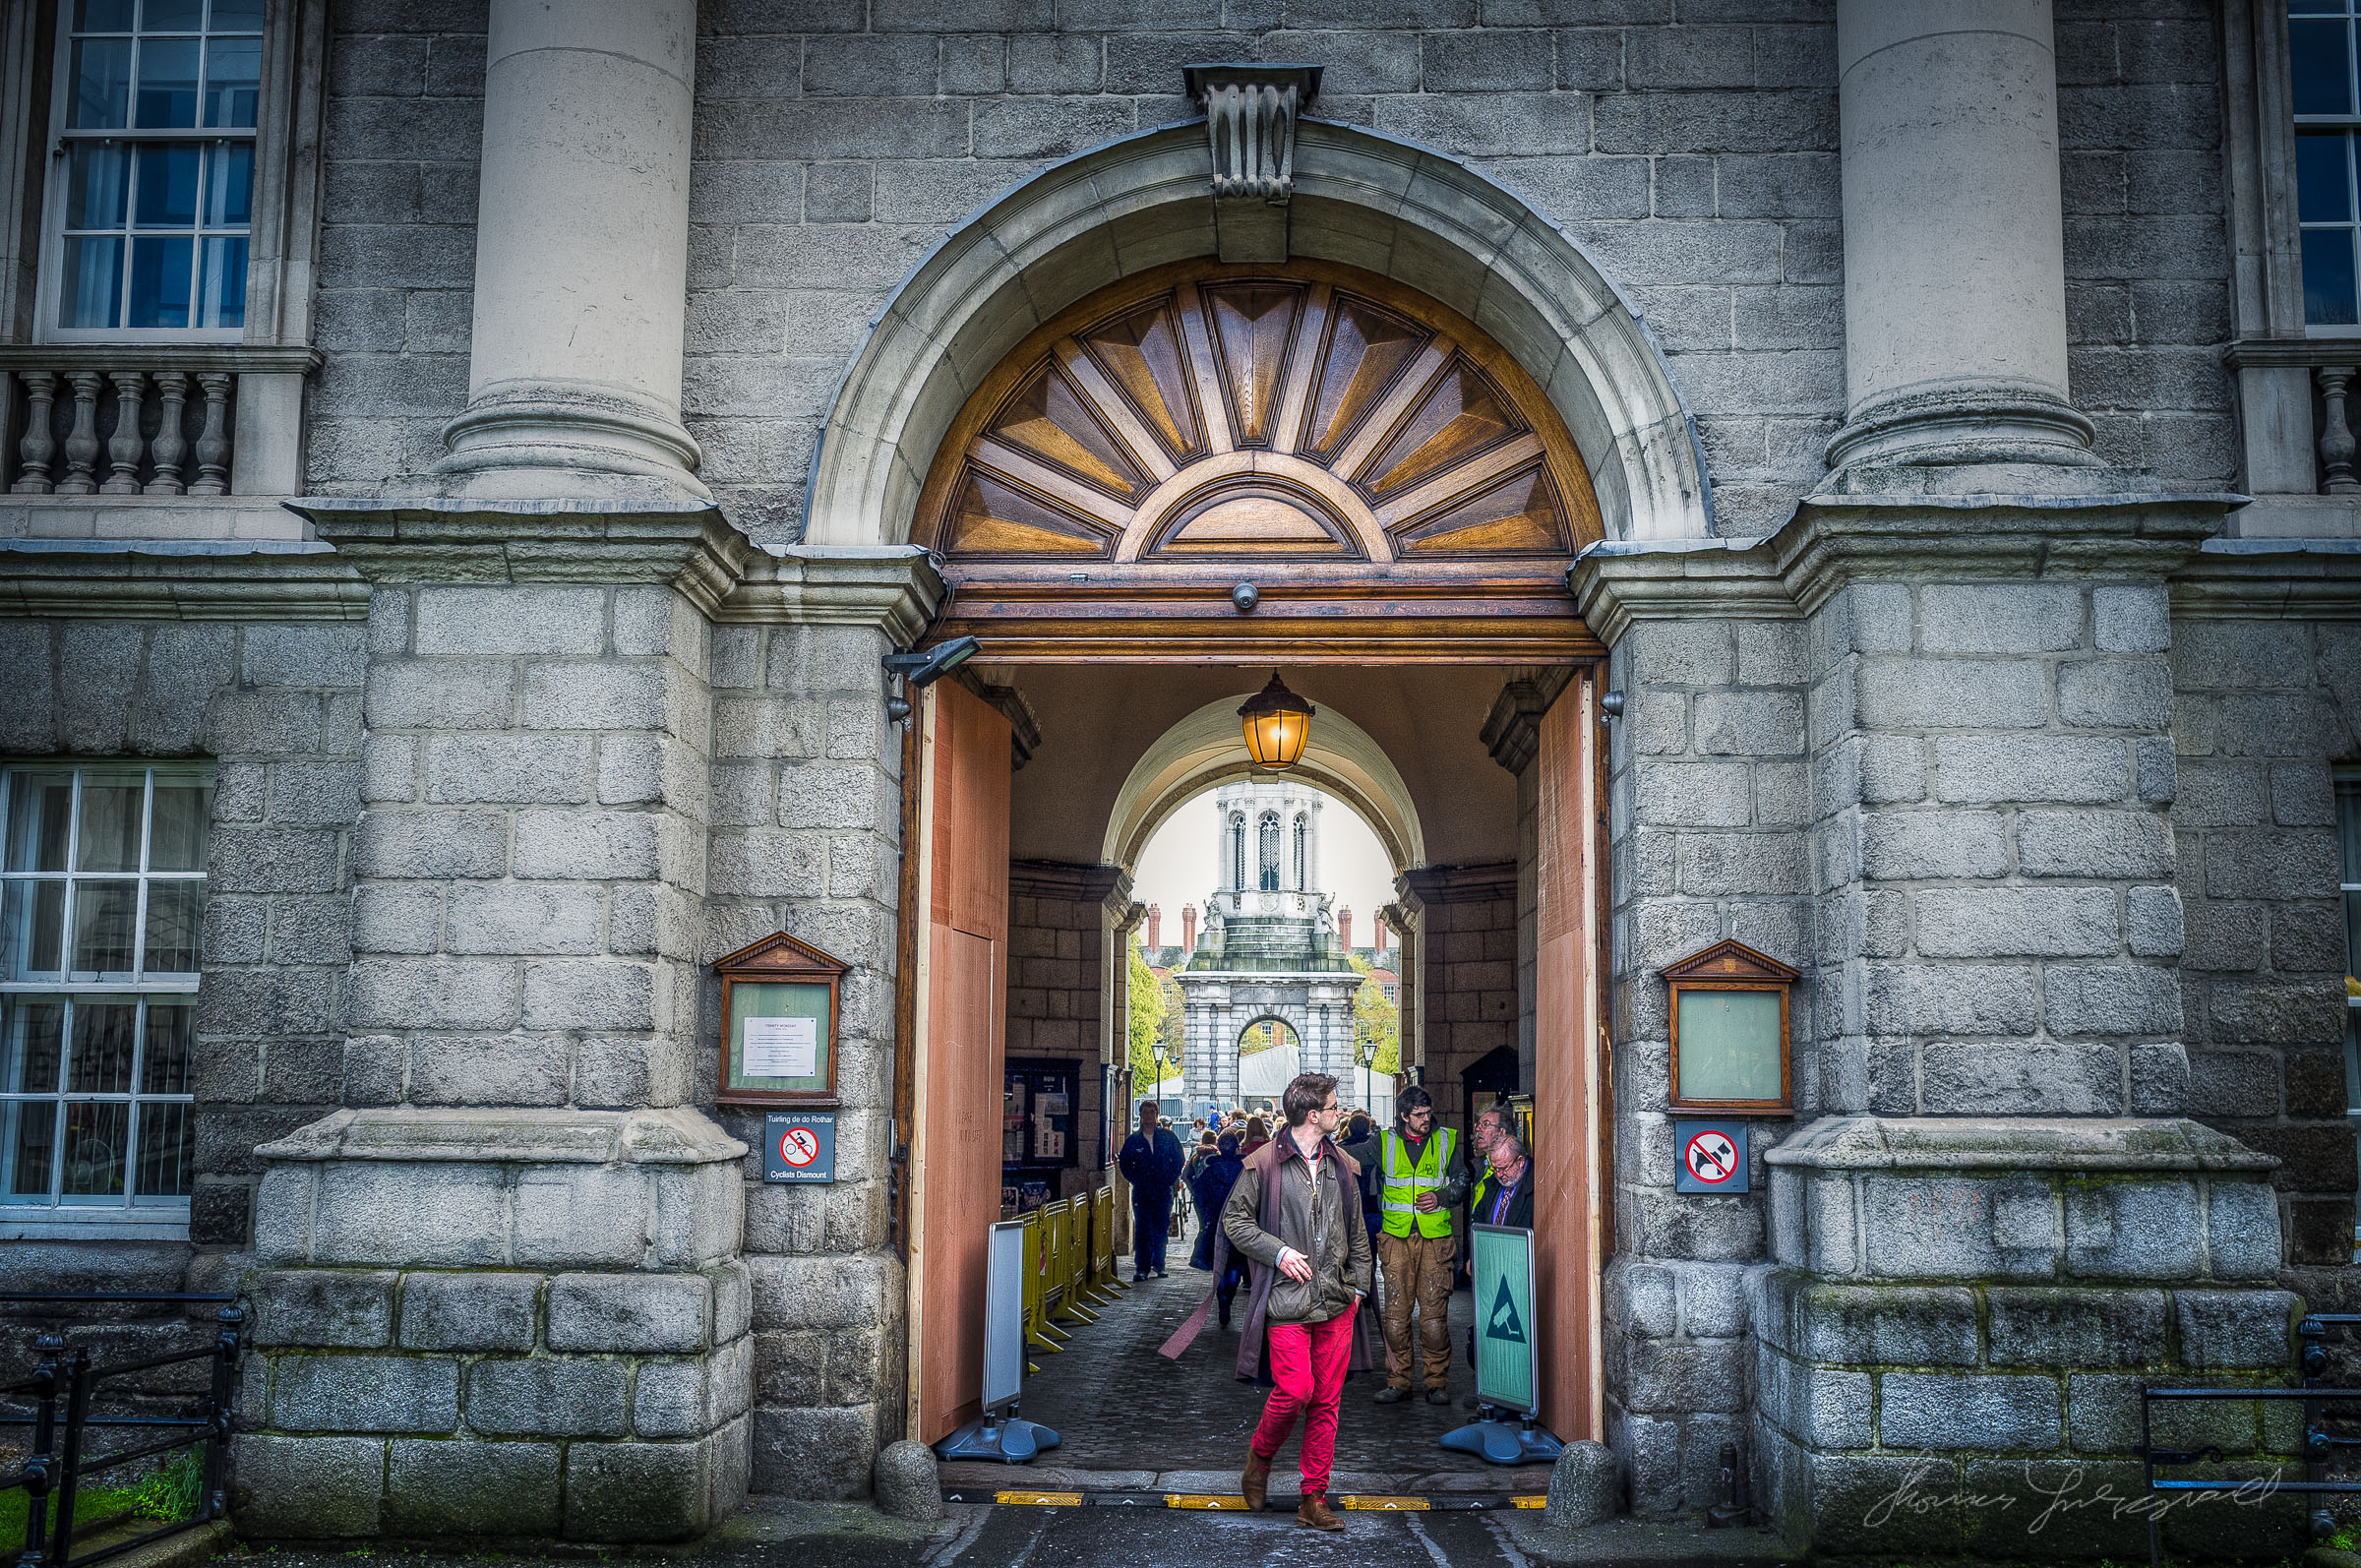 Wounded doors at Trinity College - HDR shot with x100